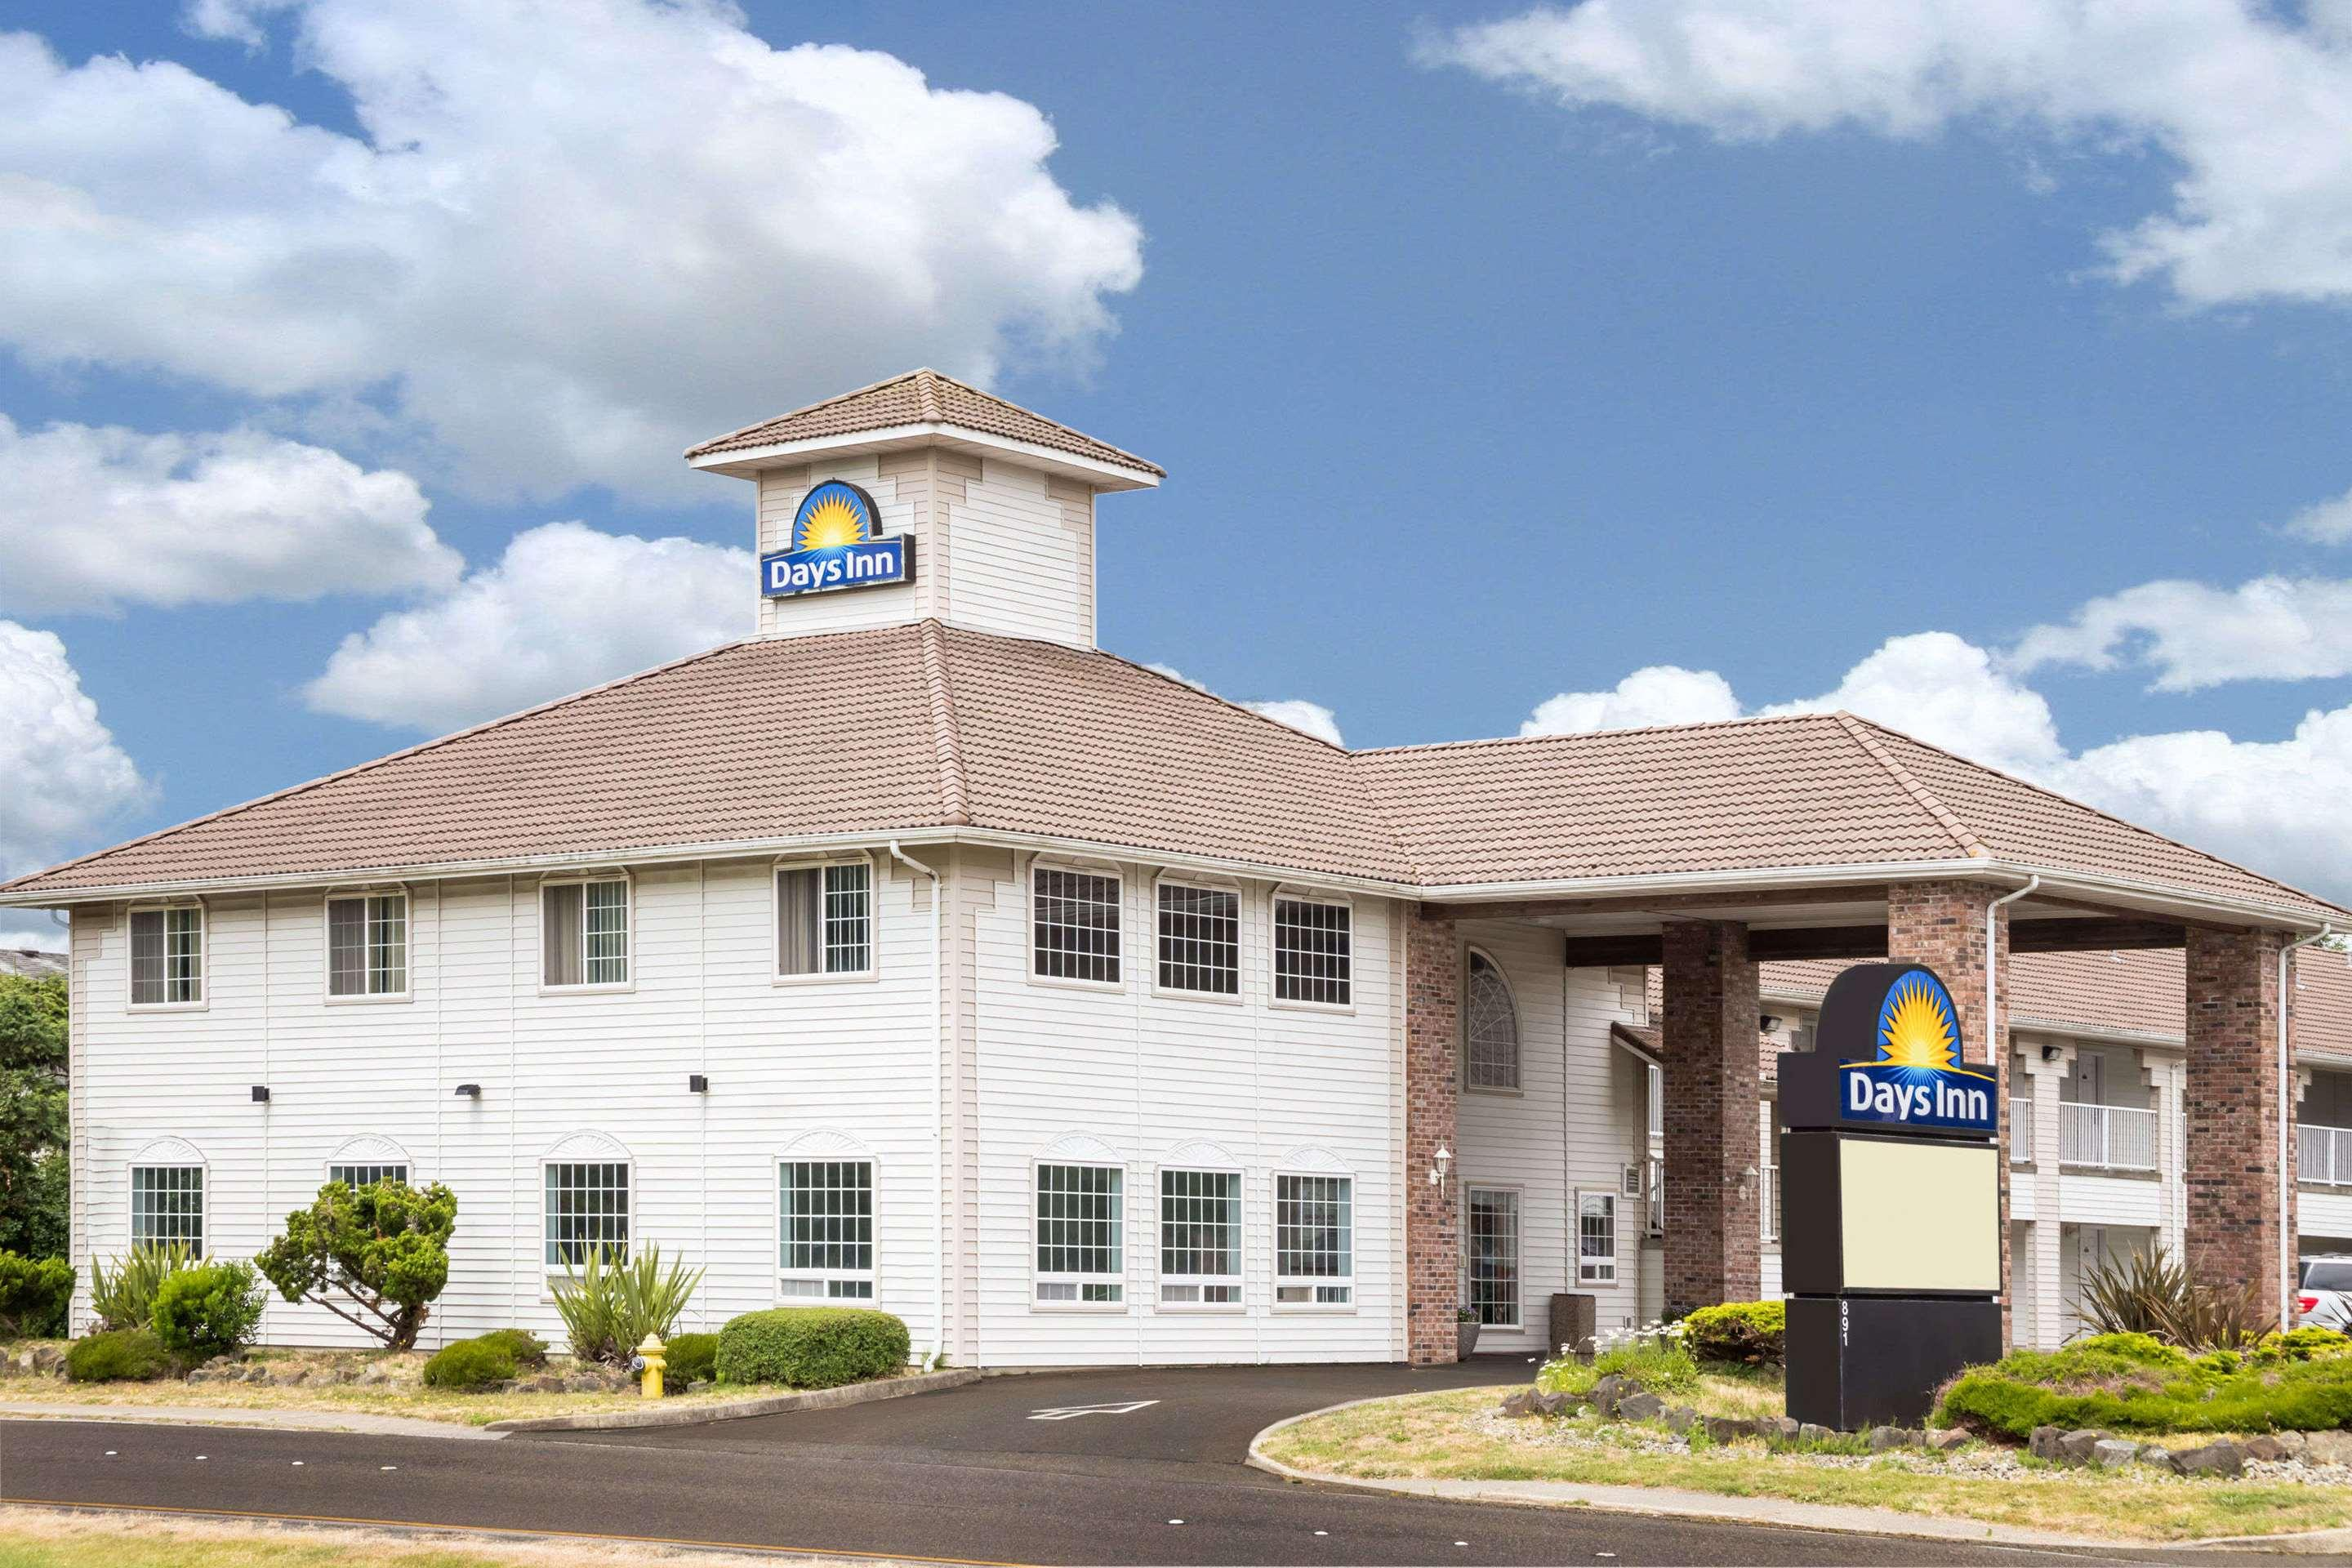 Days Inn by Wyndham Ocean Shores